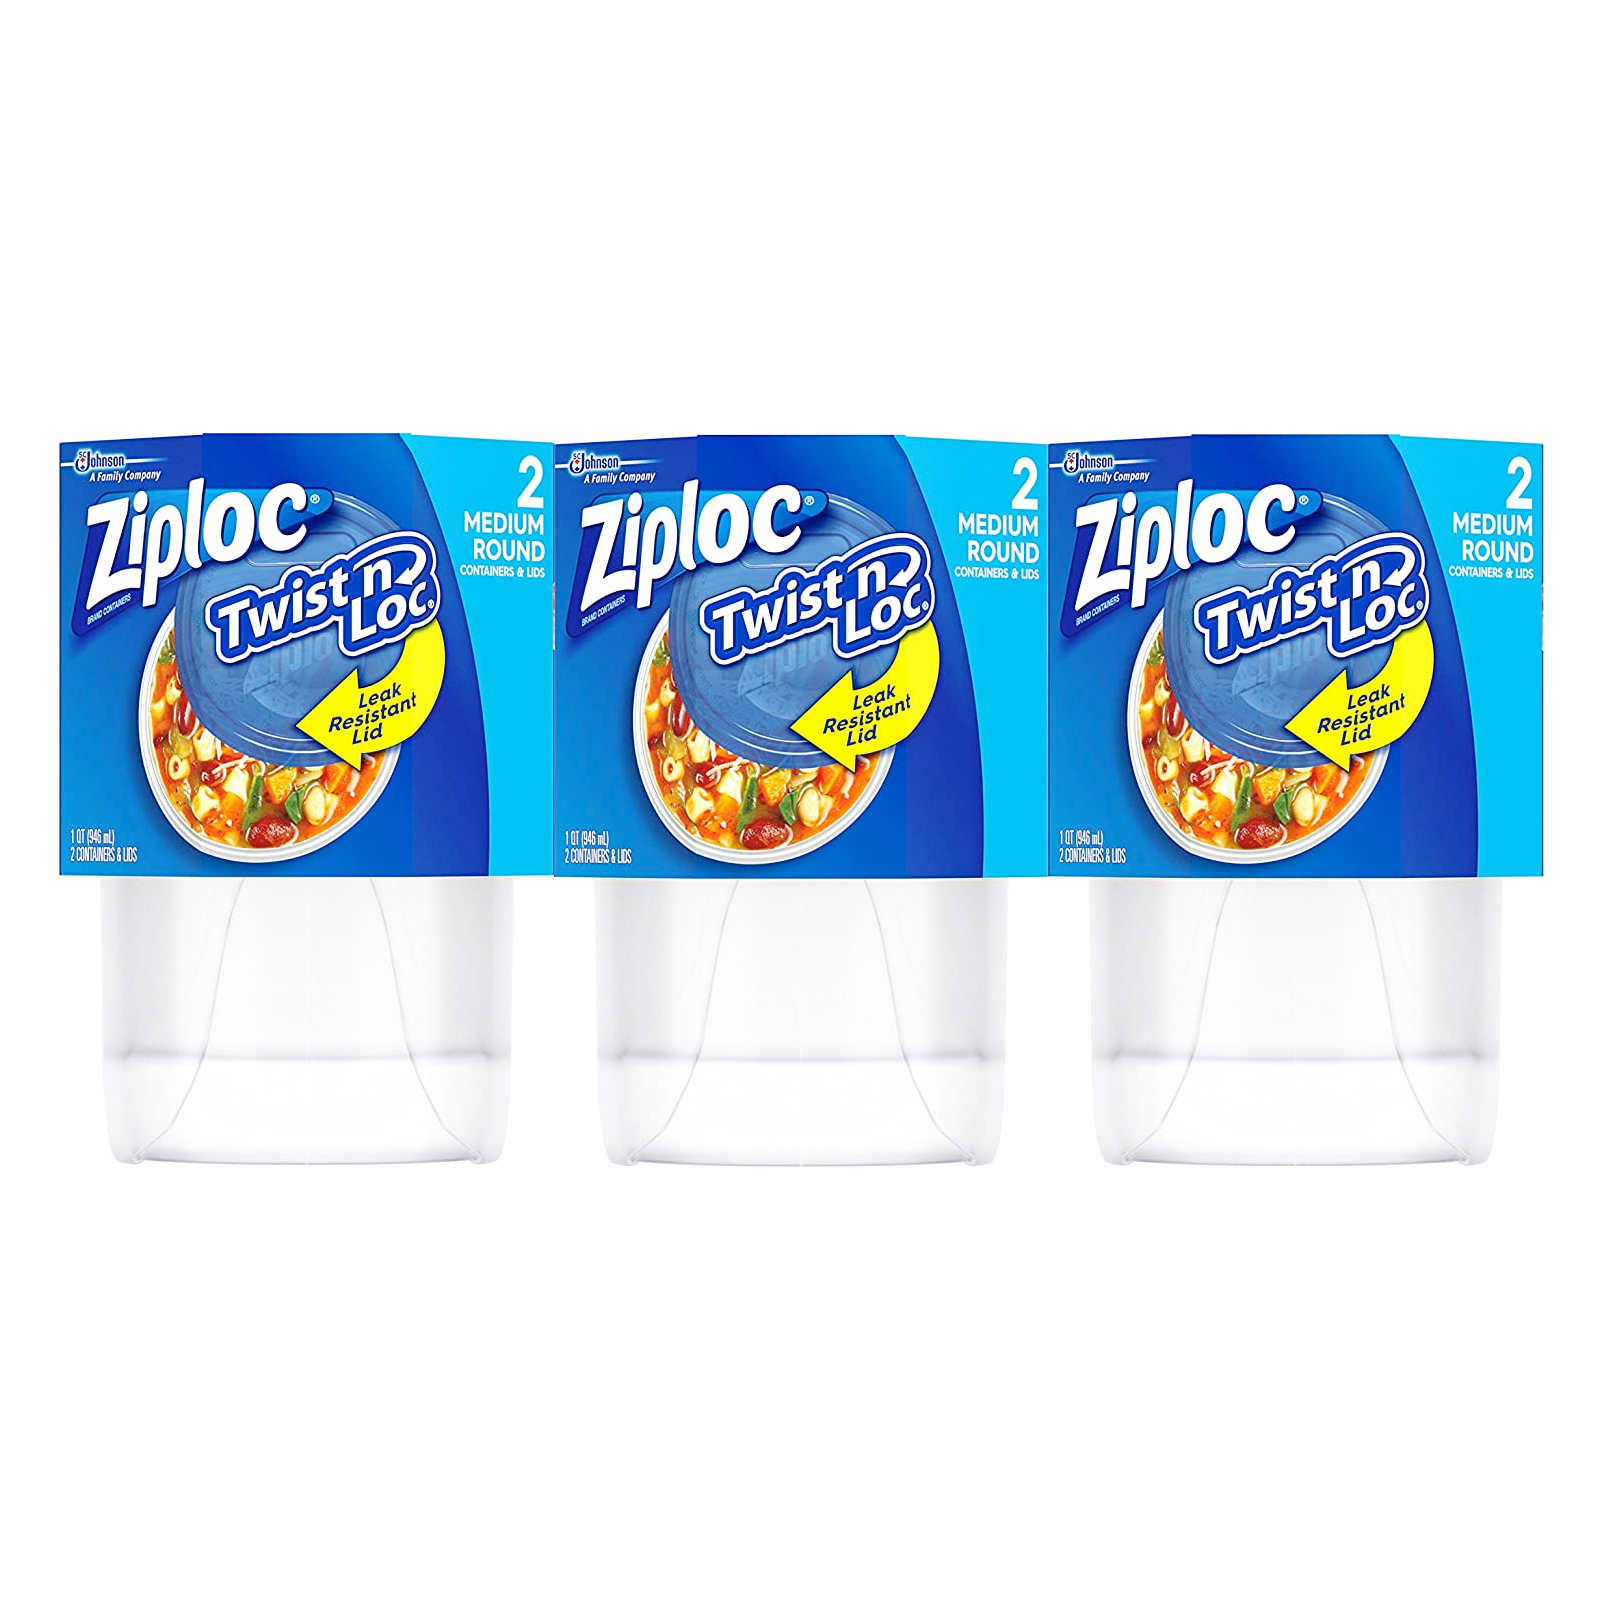 Ziploc Twist 'n Loc Storage Containers for Food